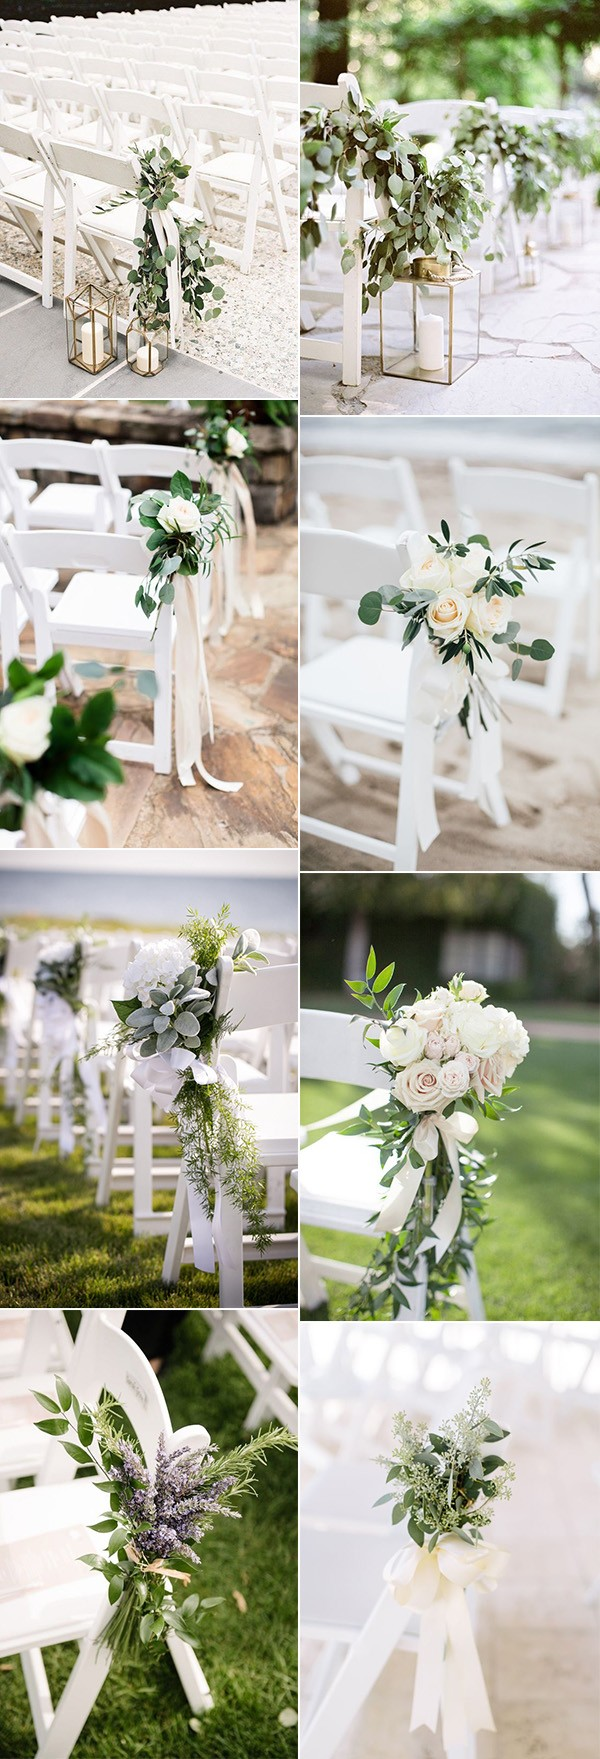 elegant white and greenery outdoor wedding aisle ideas